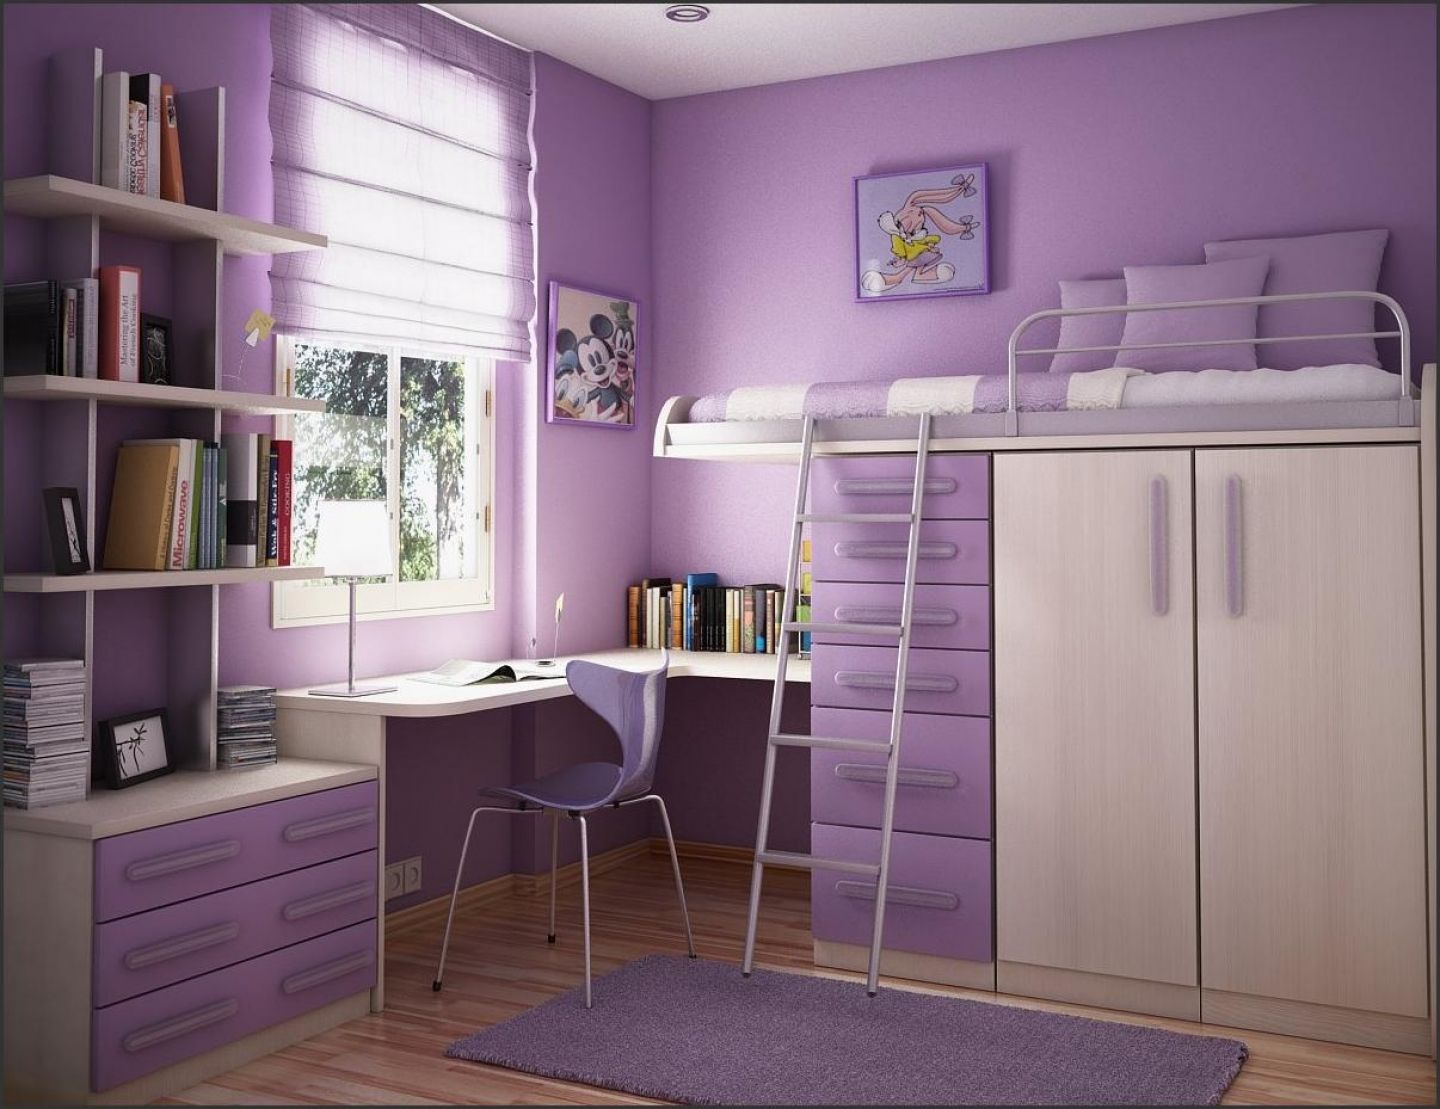 Bedroom Designs For Teenage Girls teen girl bedroom decorating ideas |  -06-13 14:03:58 bedroom